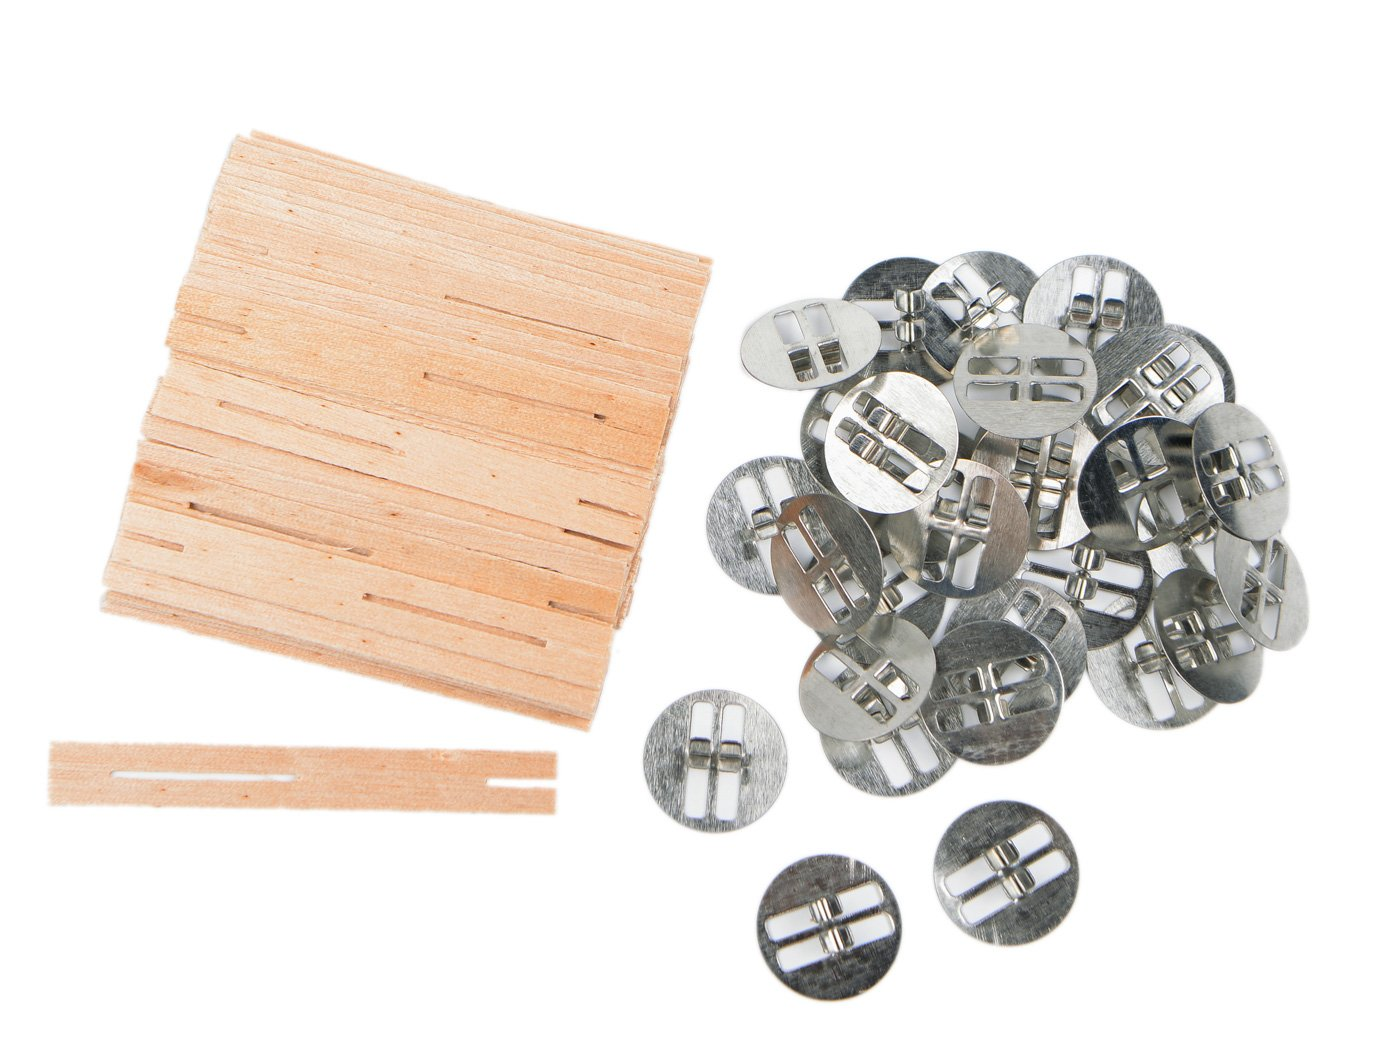 30 Sets 3.2 inch Cross Wooden Candle Wicks, Wood Candle Wicks for Candle Making and Candle DIY TADAE